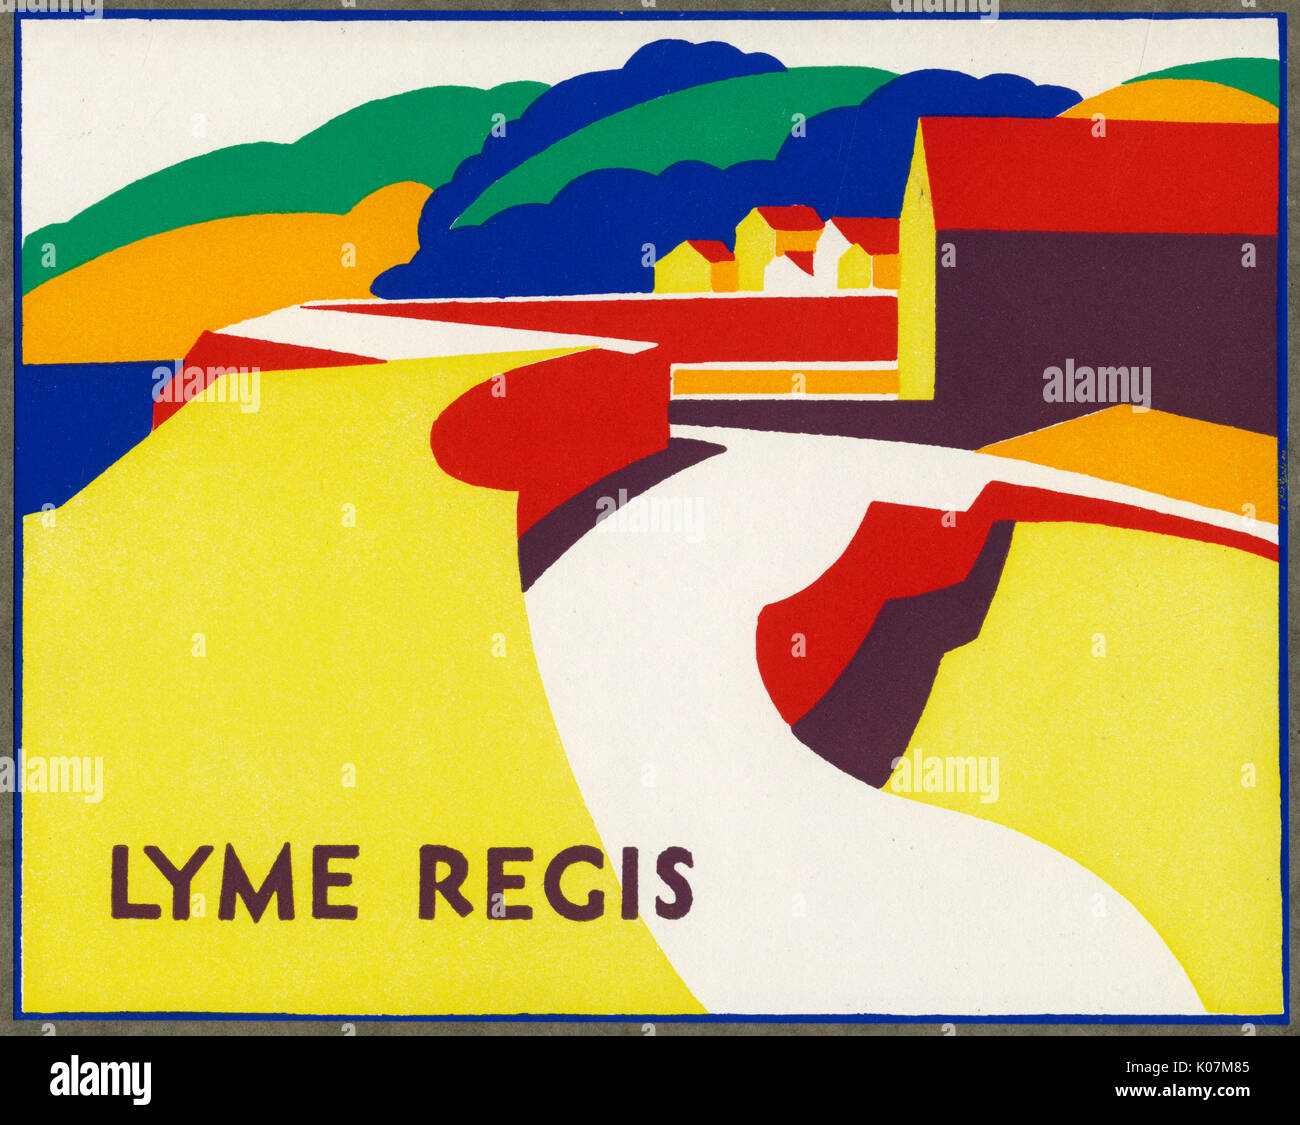 Stylised design, possibly for a poster, for Lyme Regis, the seaside town on the Dorset coast.     Date: 1934 - Stock Image